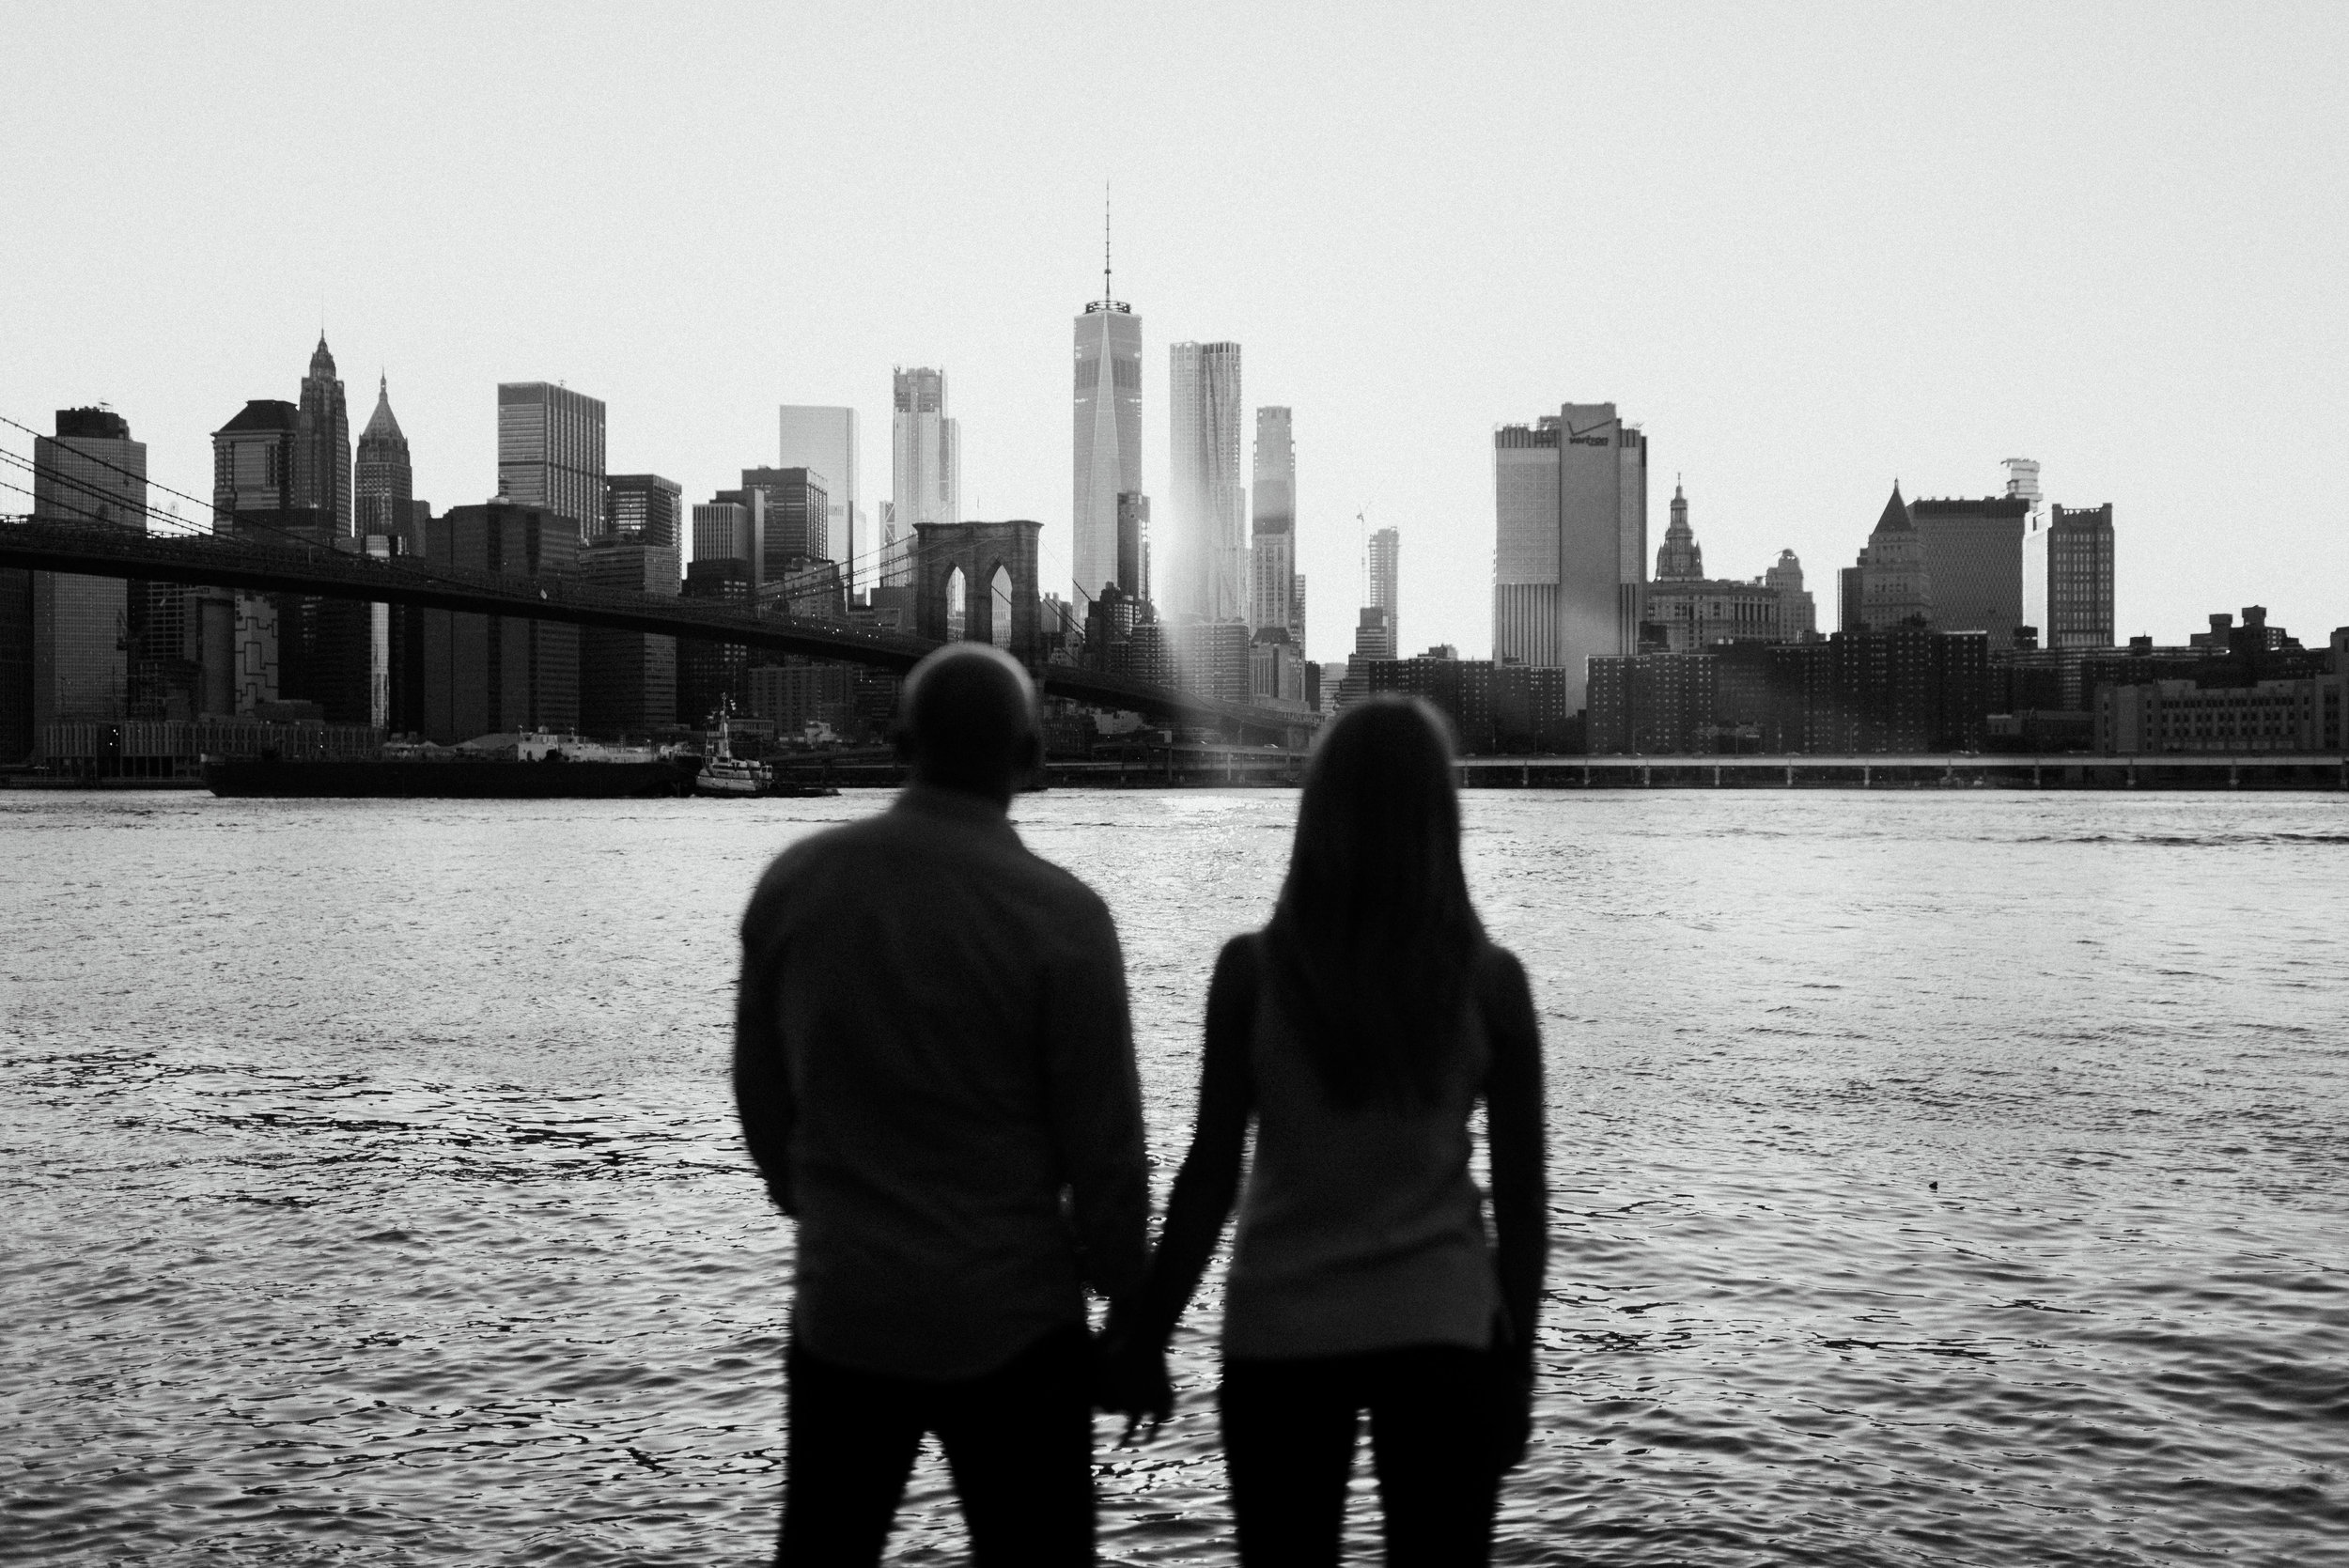 Steve + Erin live IN Manhattan… so this was an obvious decision.